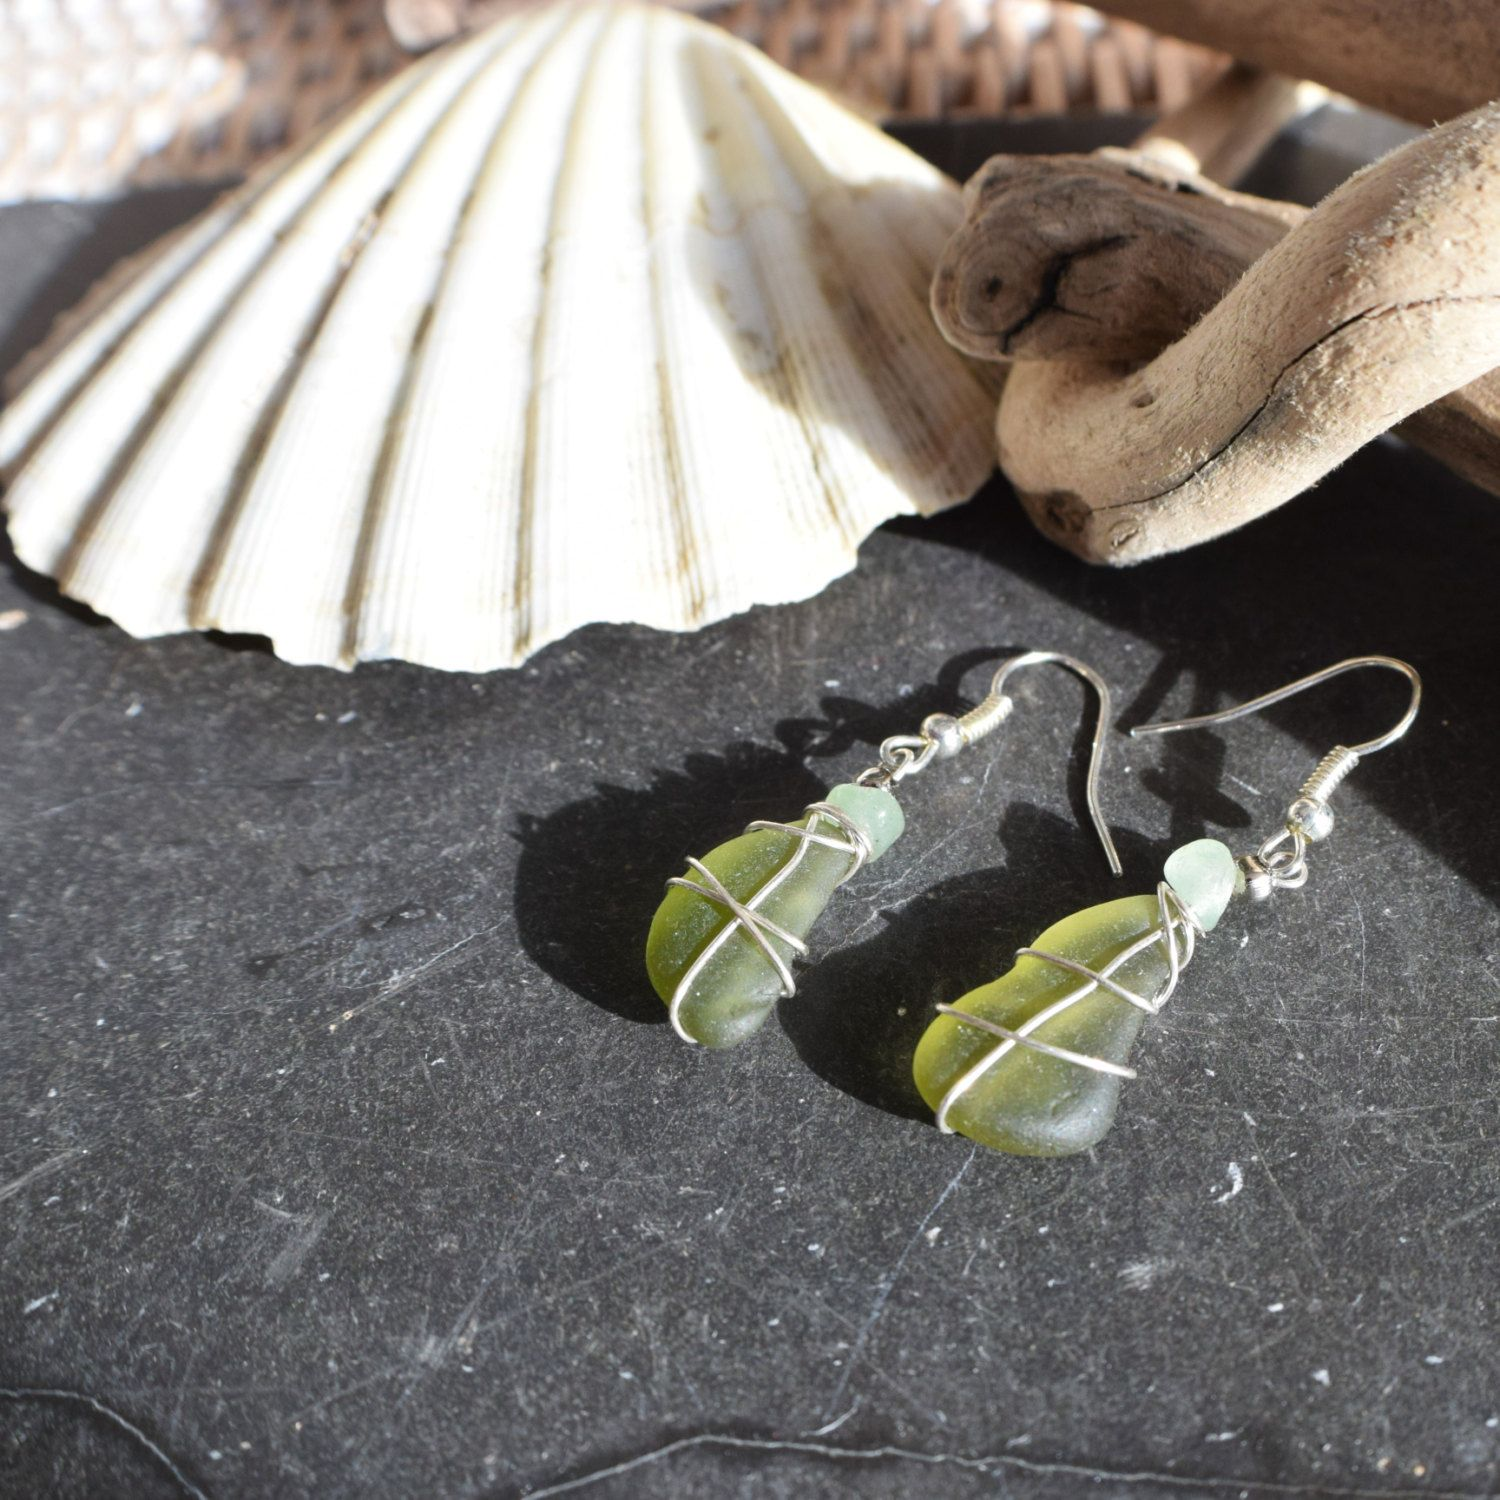 Irish Seaglass and aventurine simple drop earrings, FREE SHIPPING! Boho jewellery gifts for her, OOAK jewelry made in Ireland, ready to gift